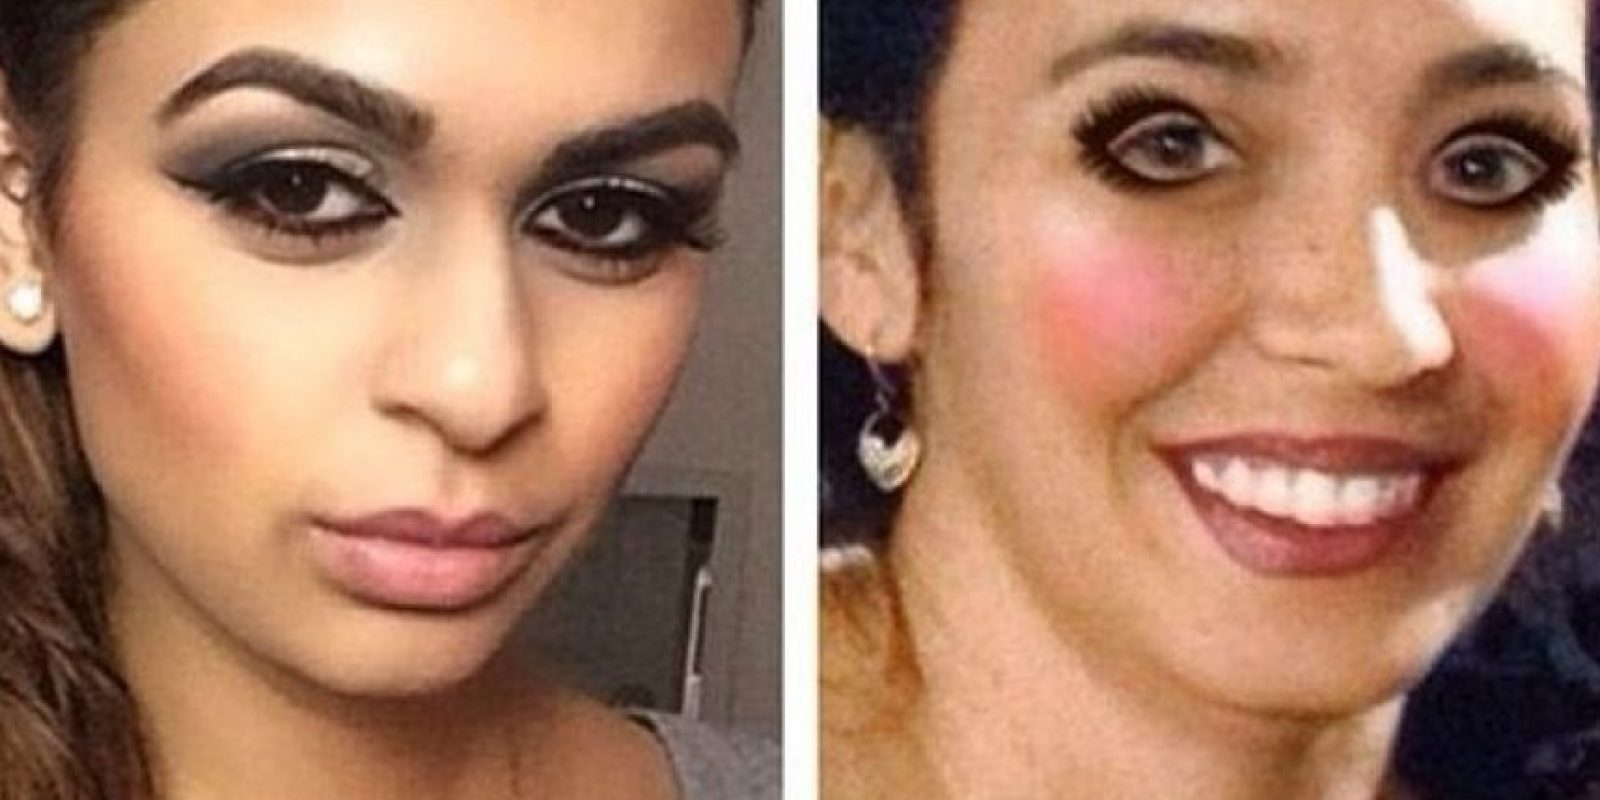 11. Expectativa vs Realidad Foto: Know Your Meme